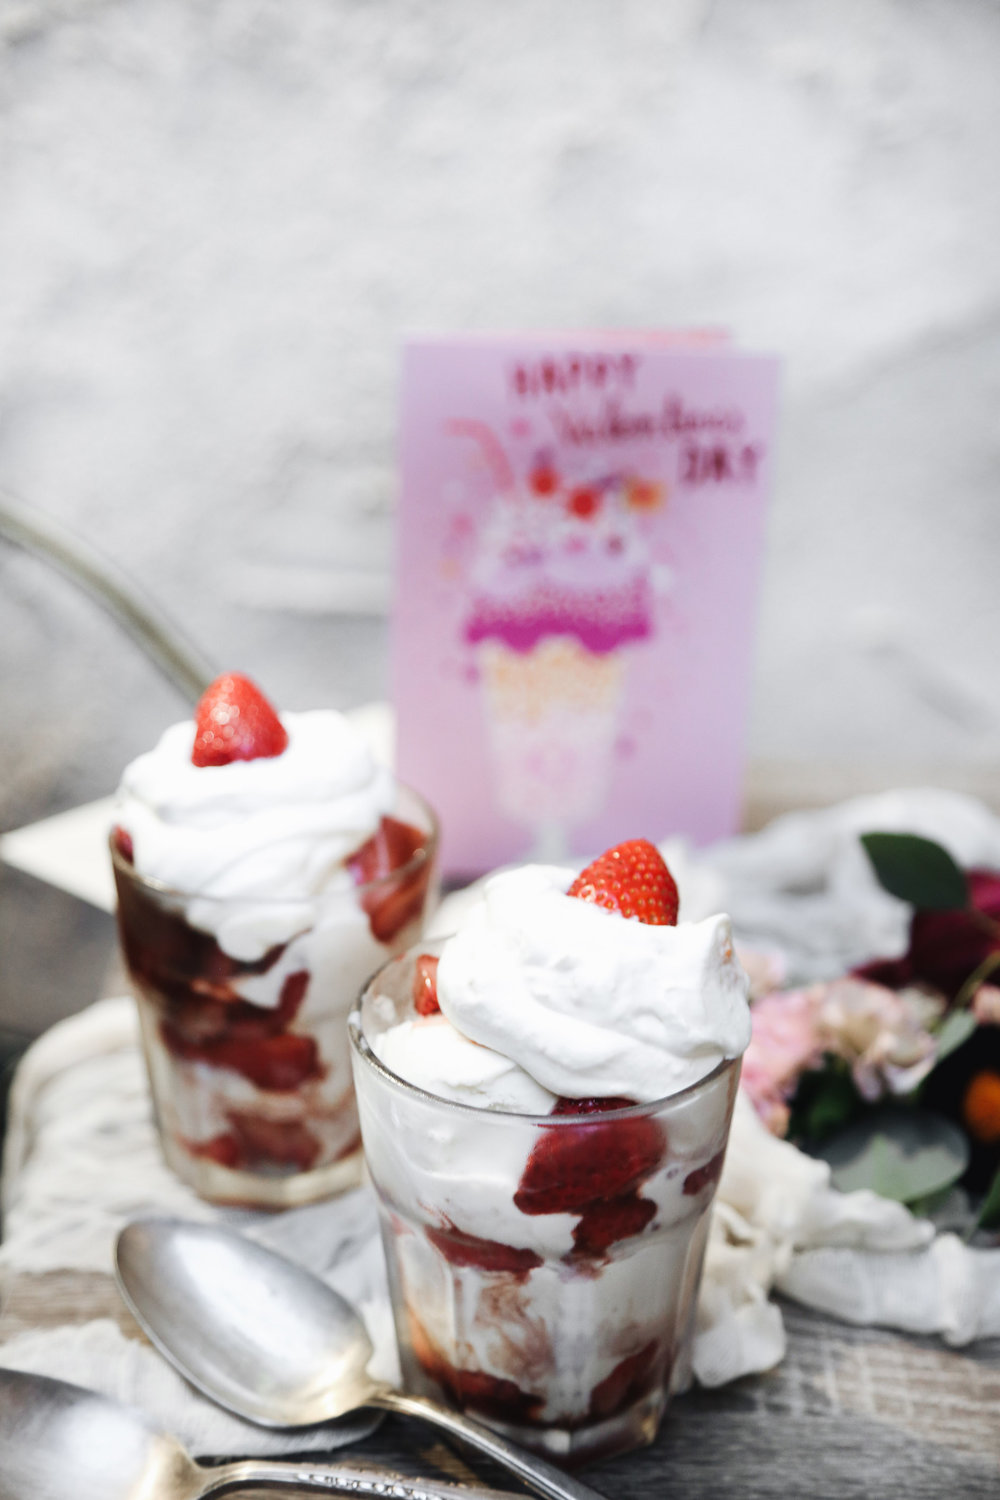 STRAWBERRIES & CREAM SUNDAES - SERVES 2-4